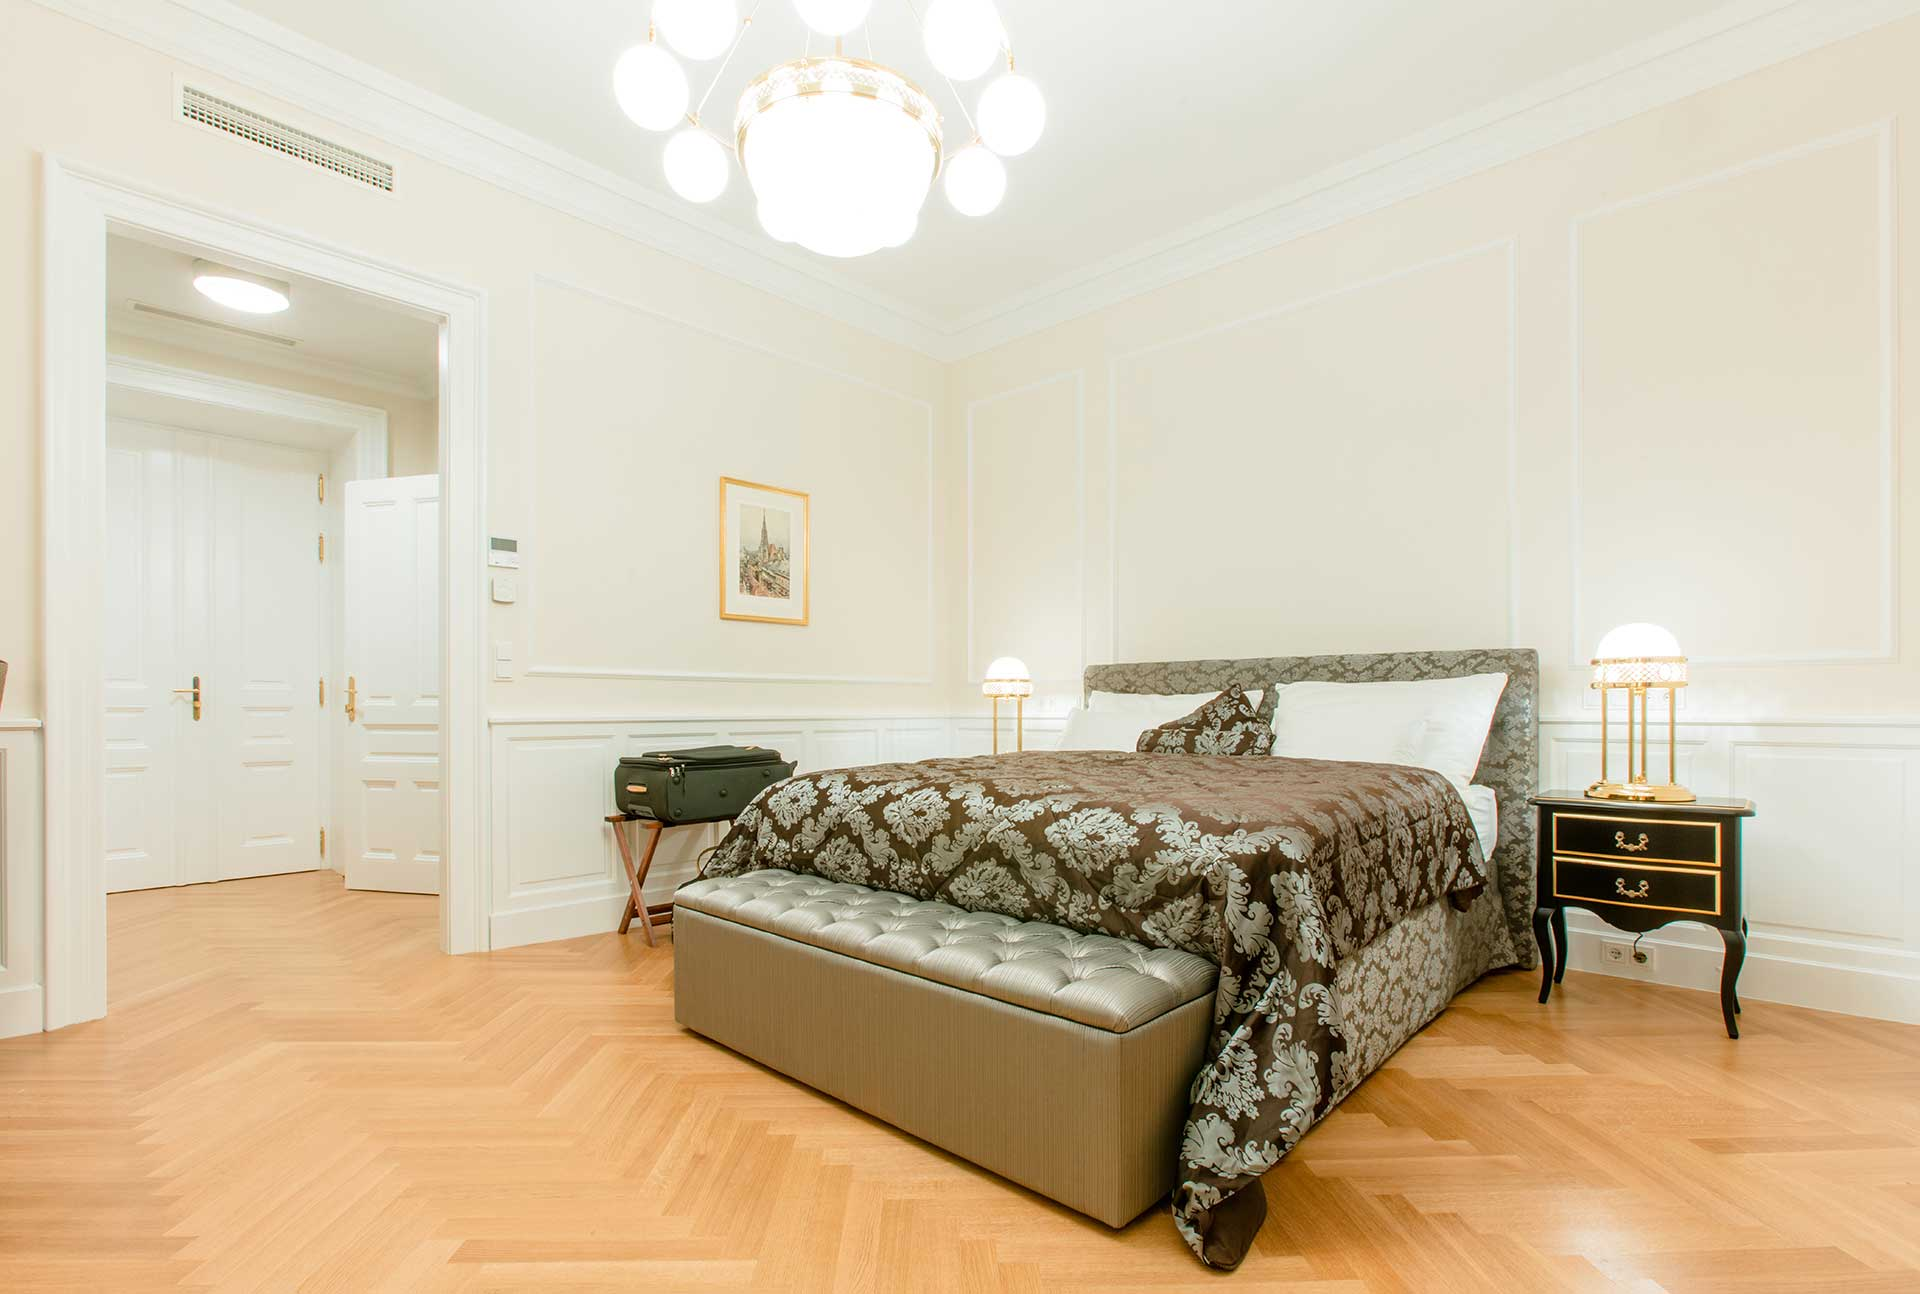 Best Place To Stay In Vienna – Imperium Residence